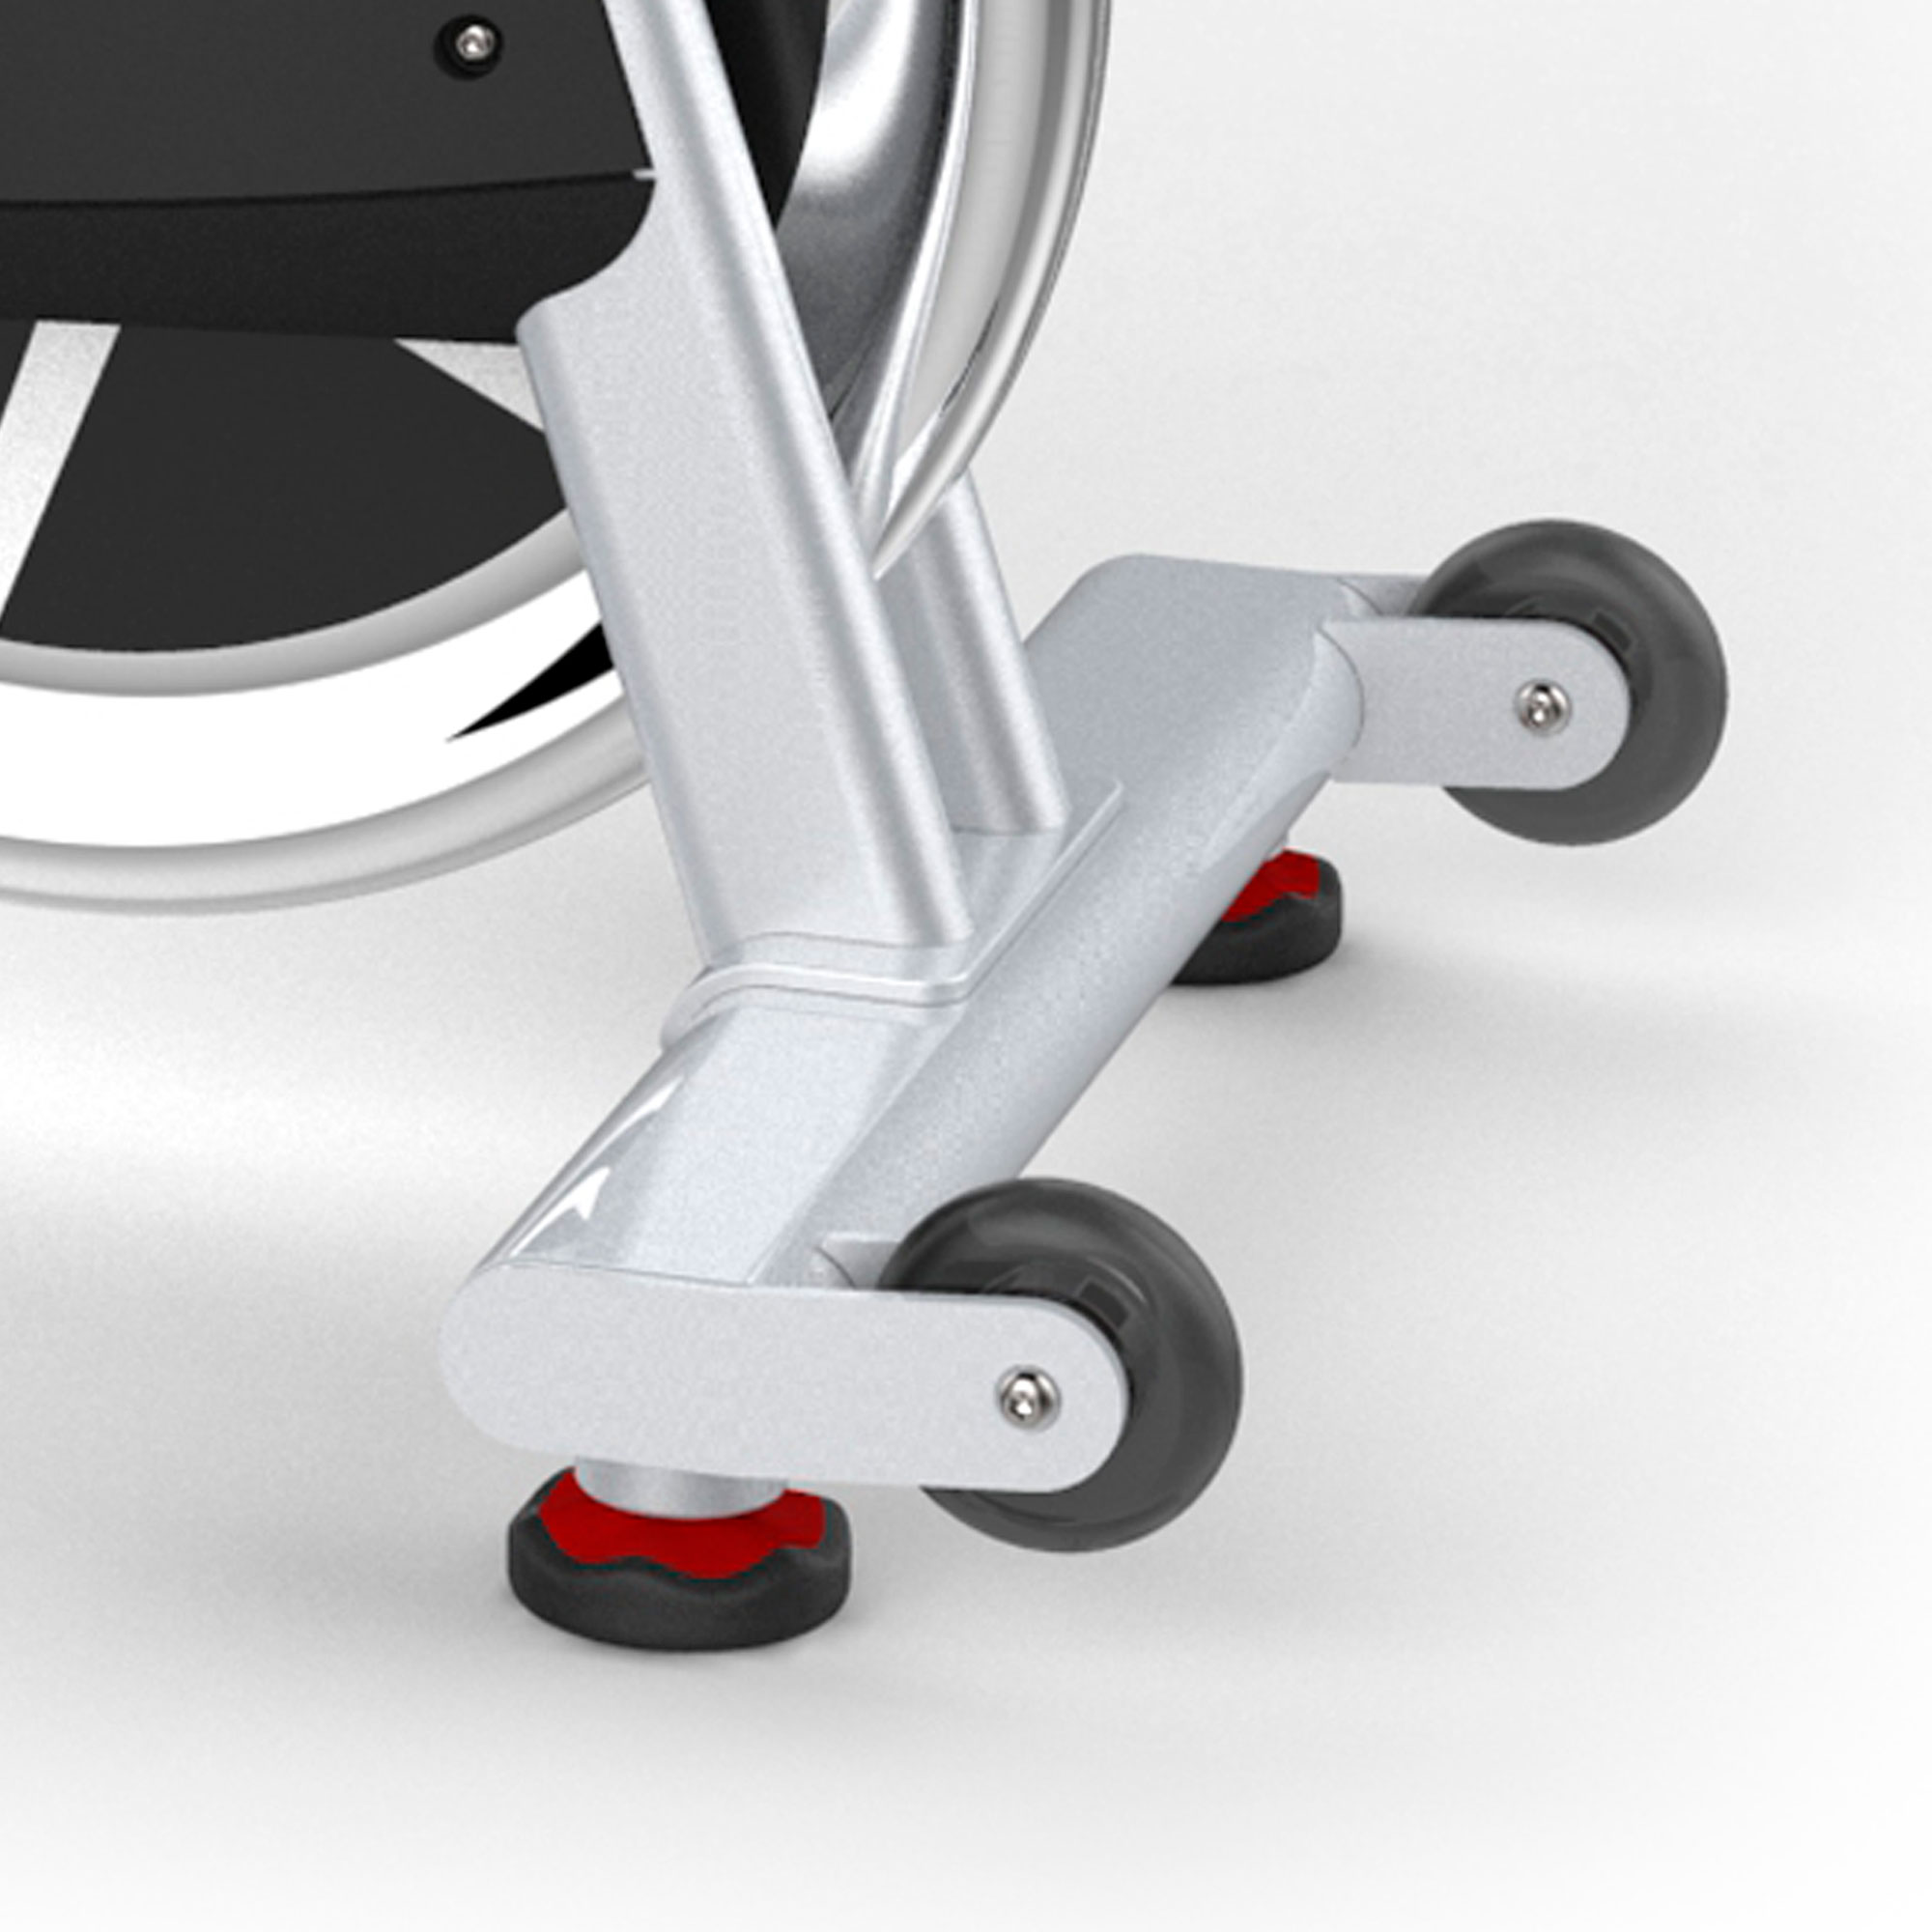 hight resolution of easy transport wheels and stabilizer feet